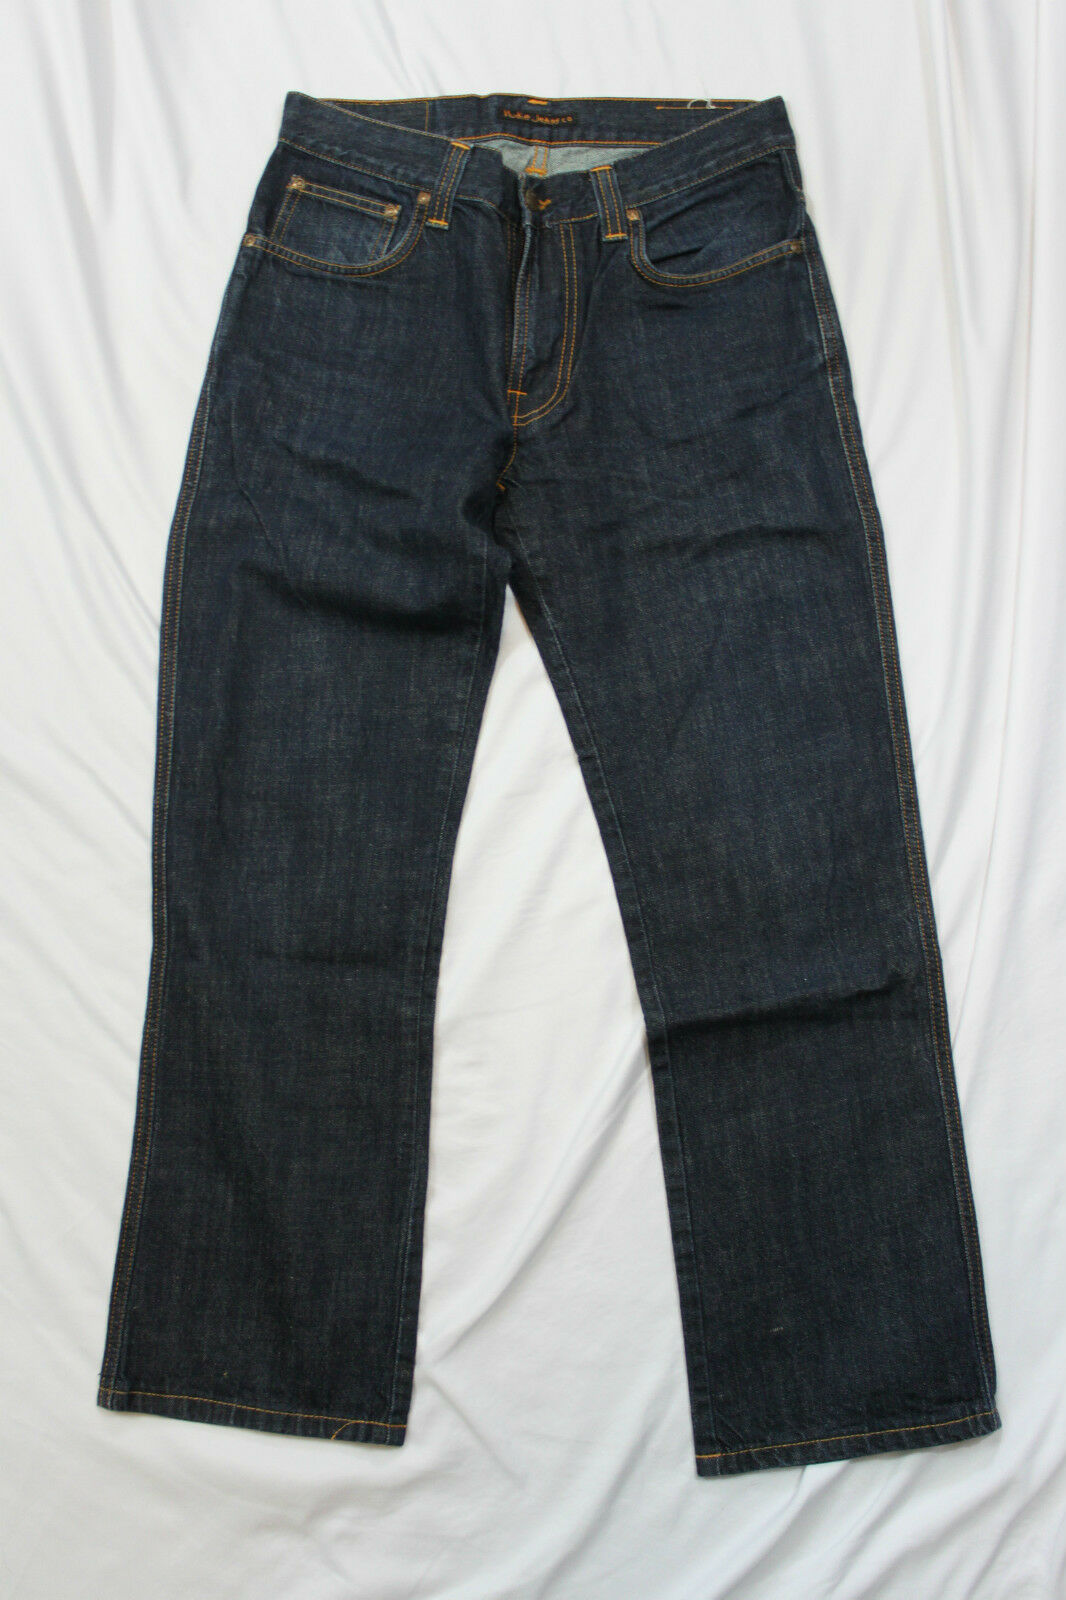 Nudie Jeans Slim Jim NJ2825 DRY NAVY ORGANIC W31 L28 Organic Cotton HEMMED